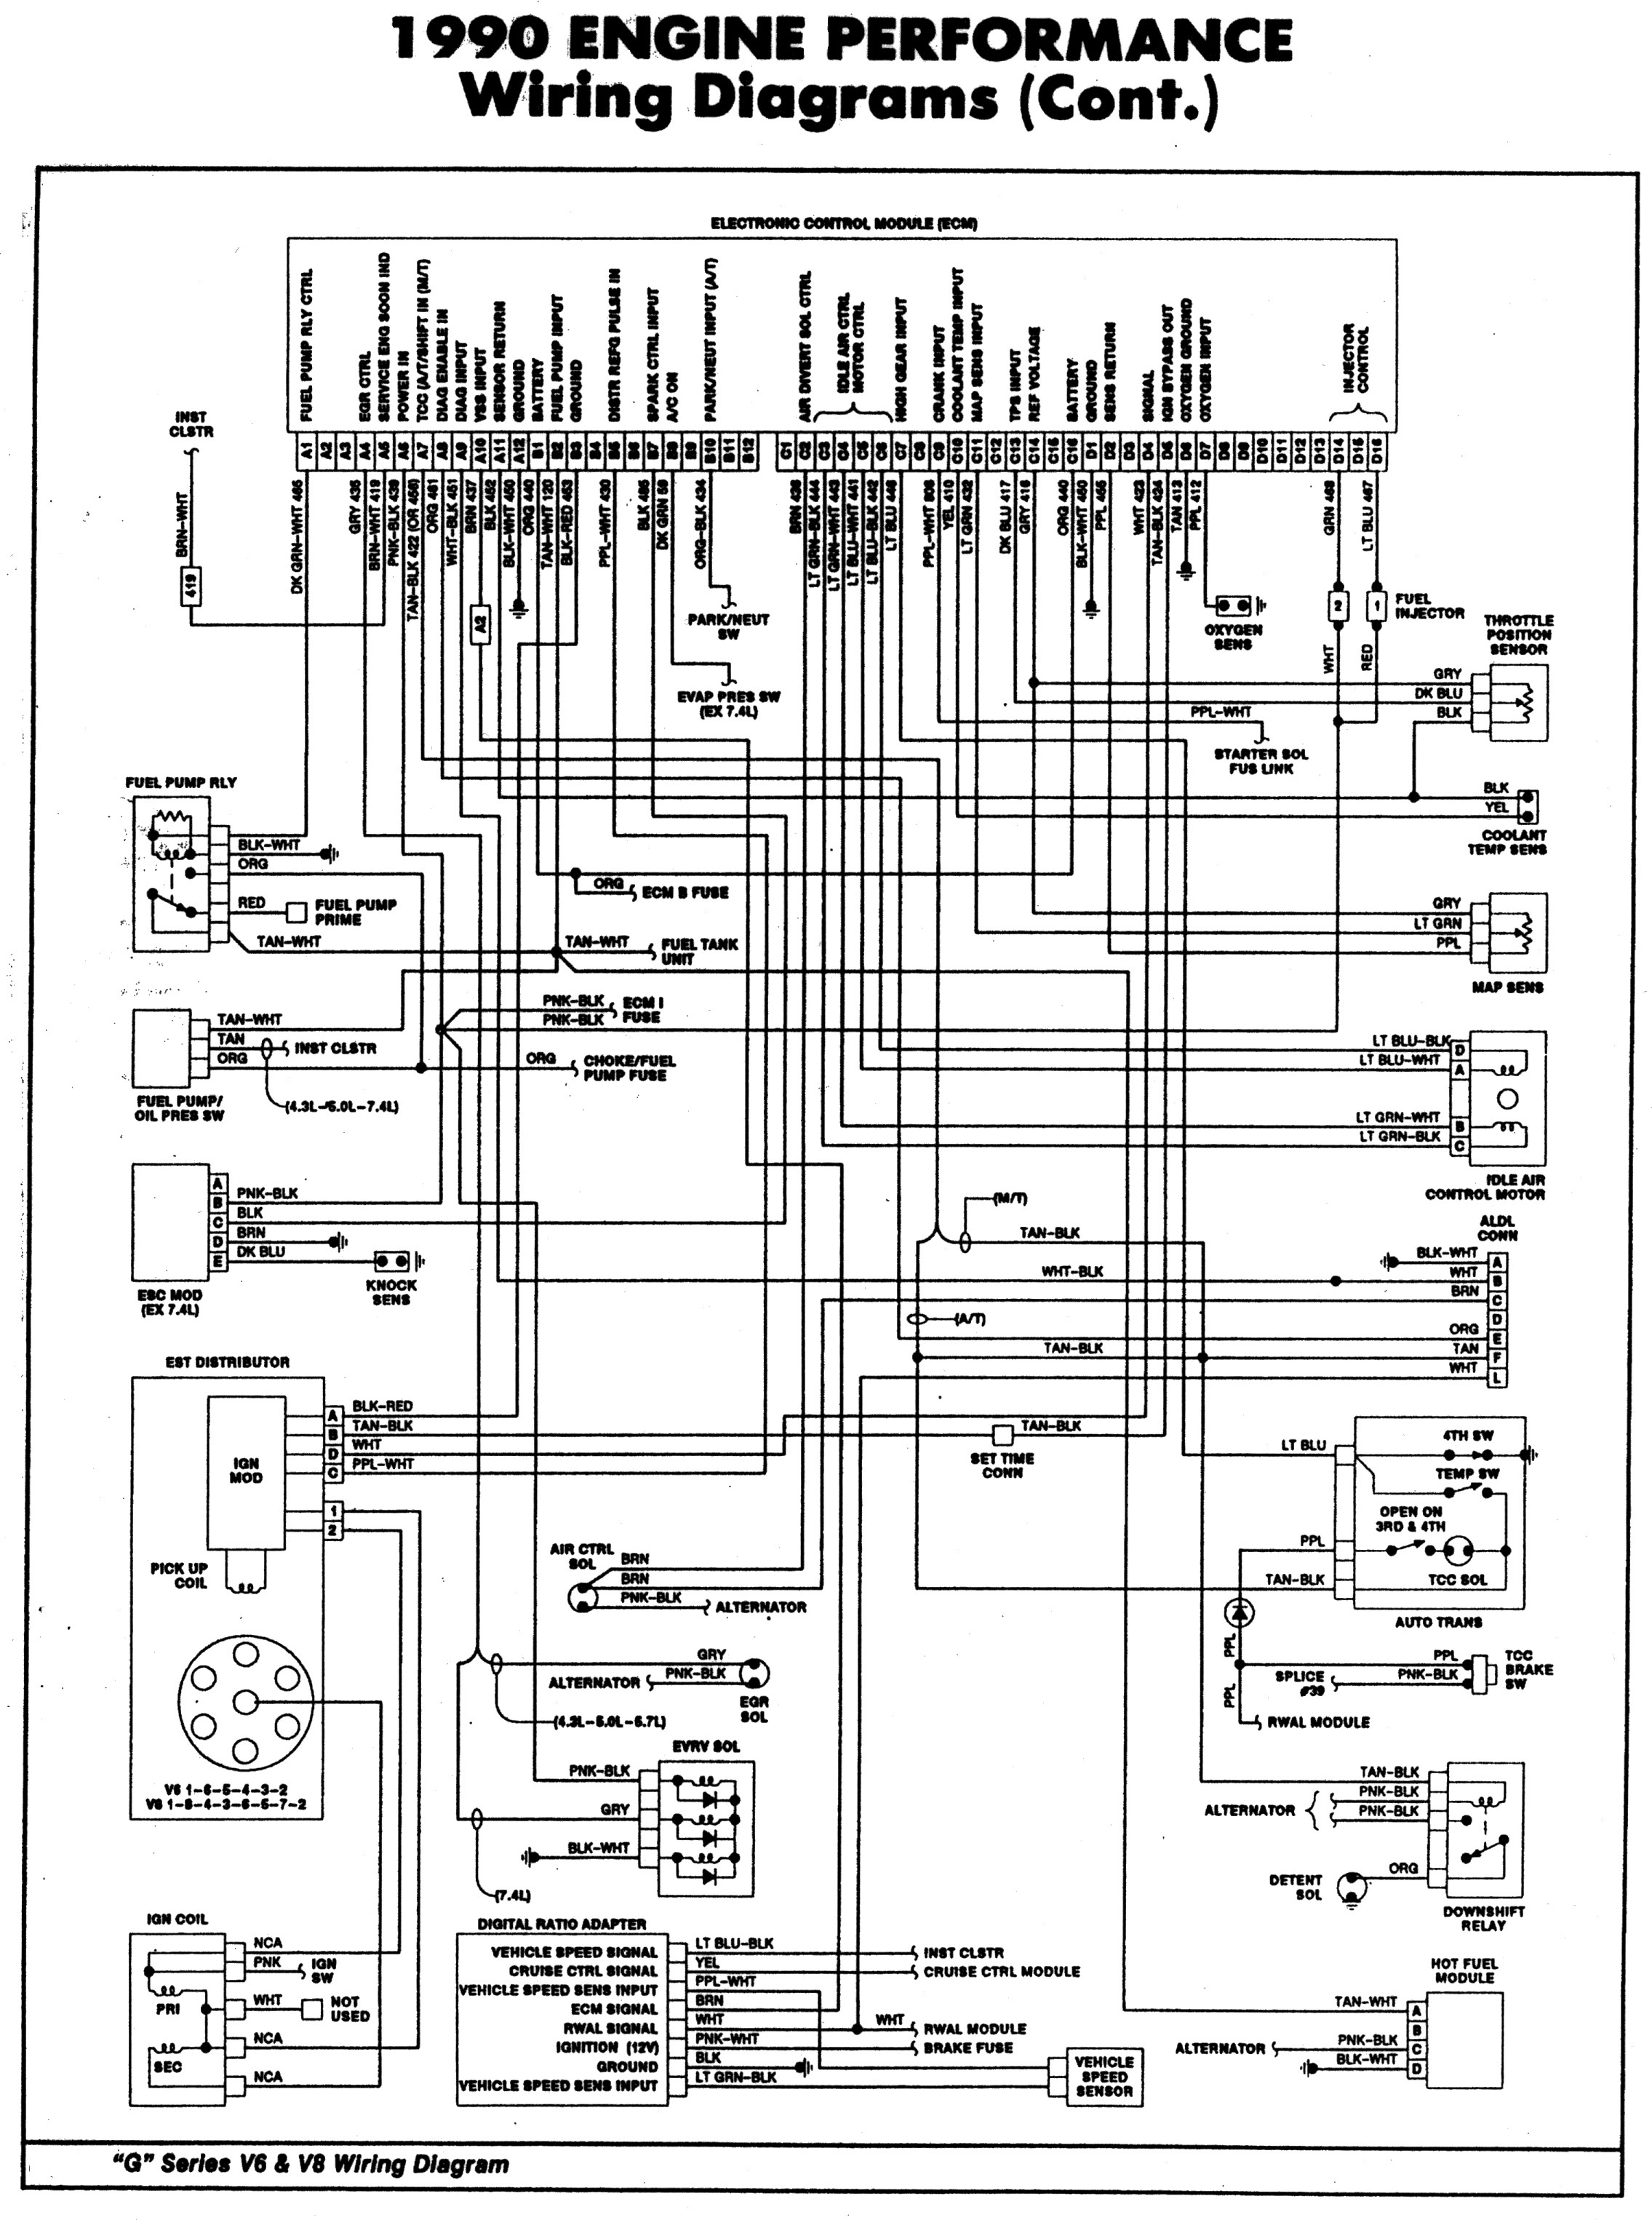 92 k1500 injector wiring diagram wiring library k1500 relay diagram 1990  chevrolet k1500 engine diagram just